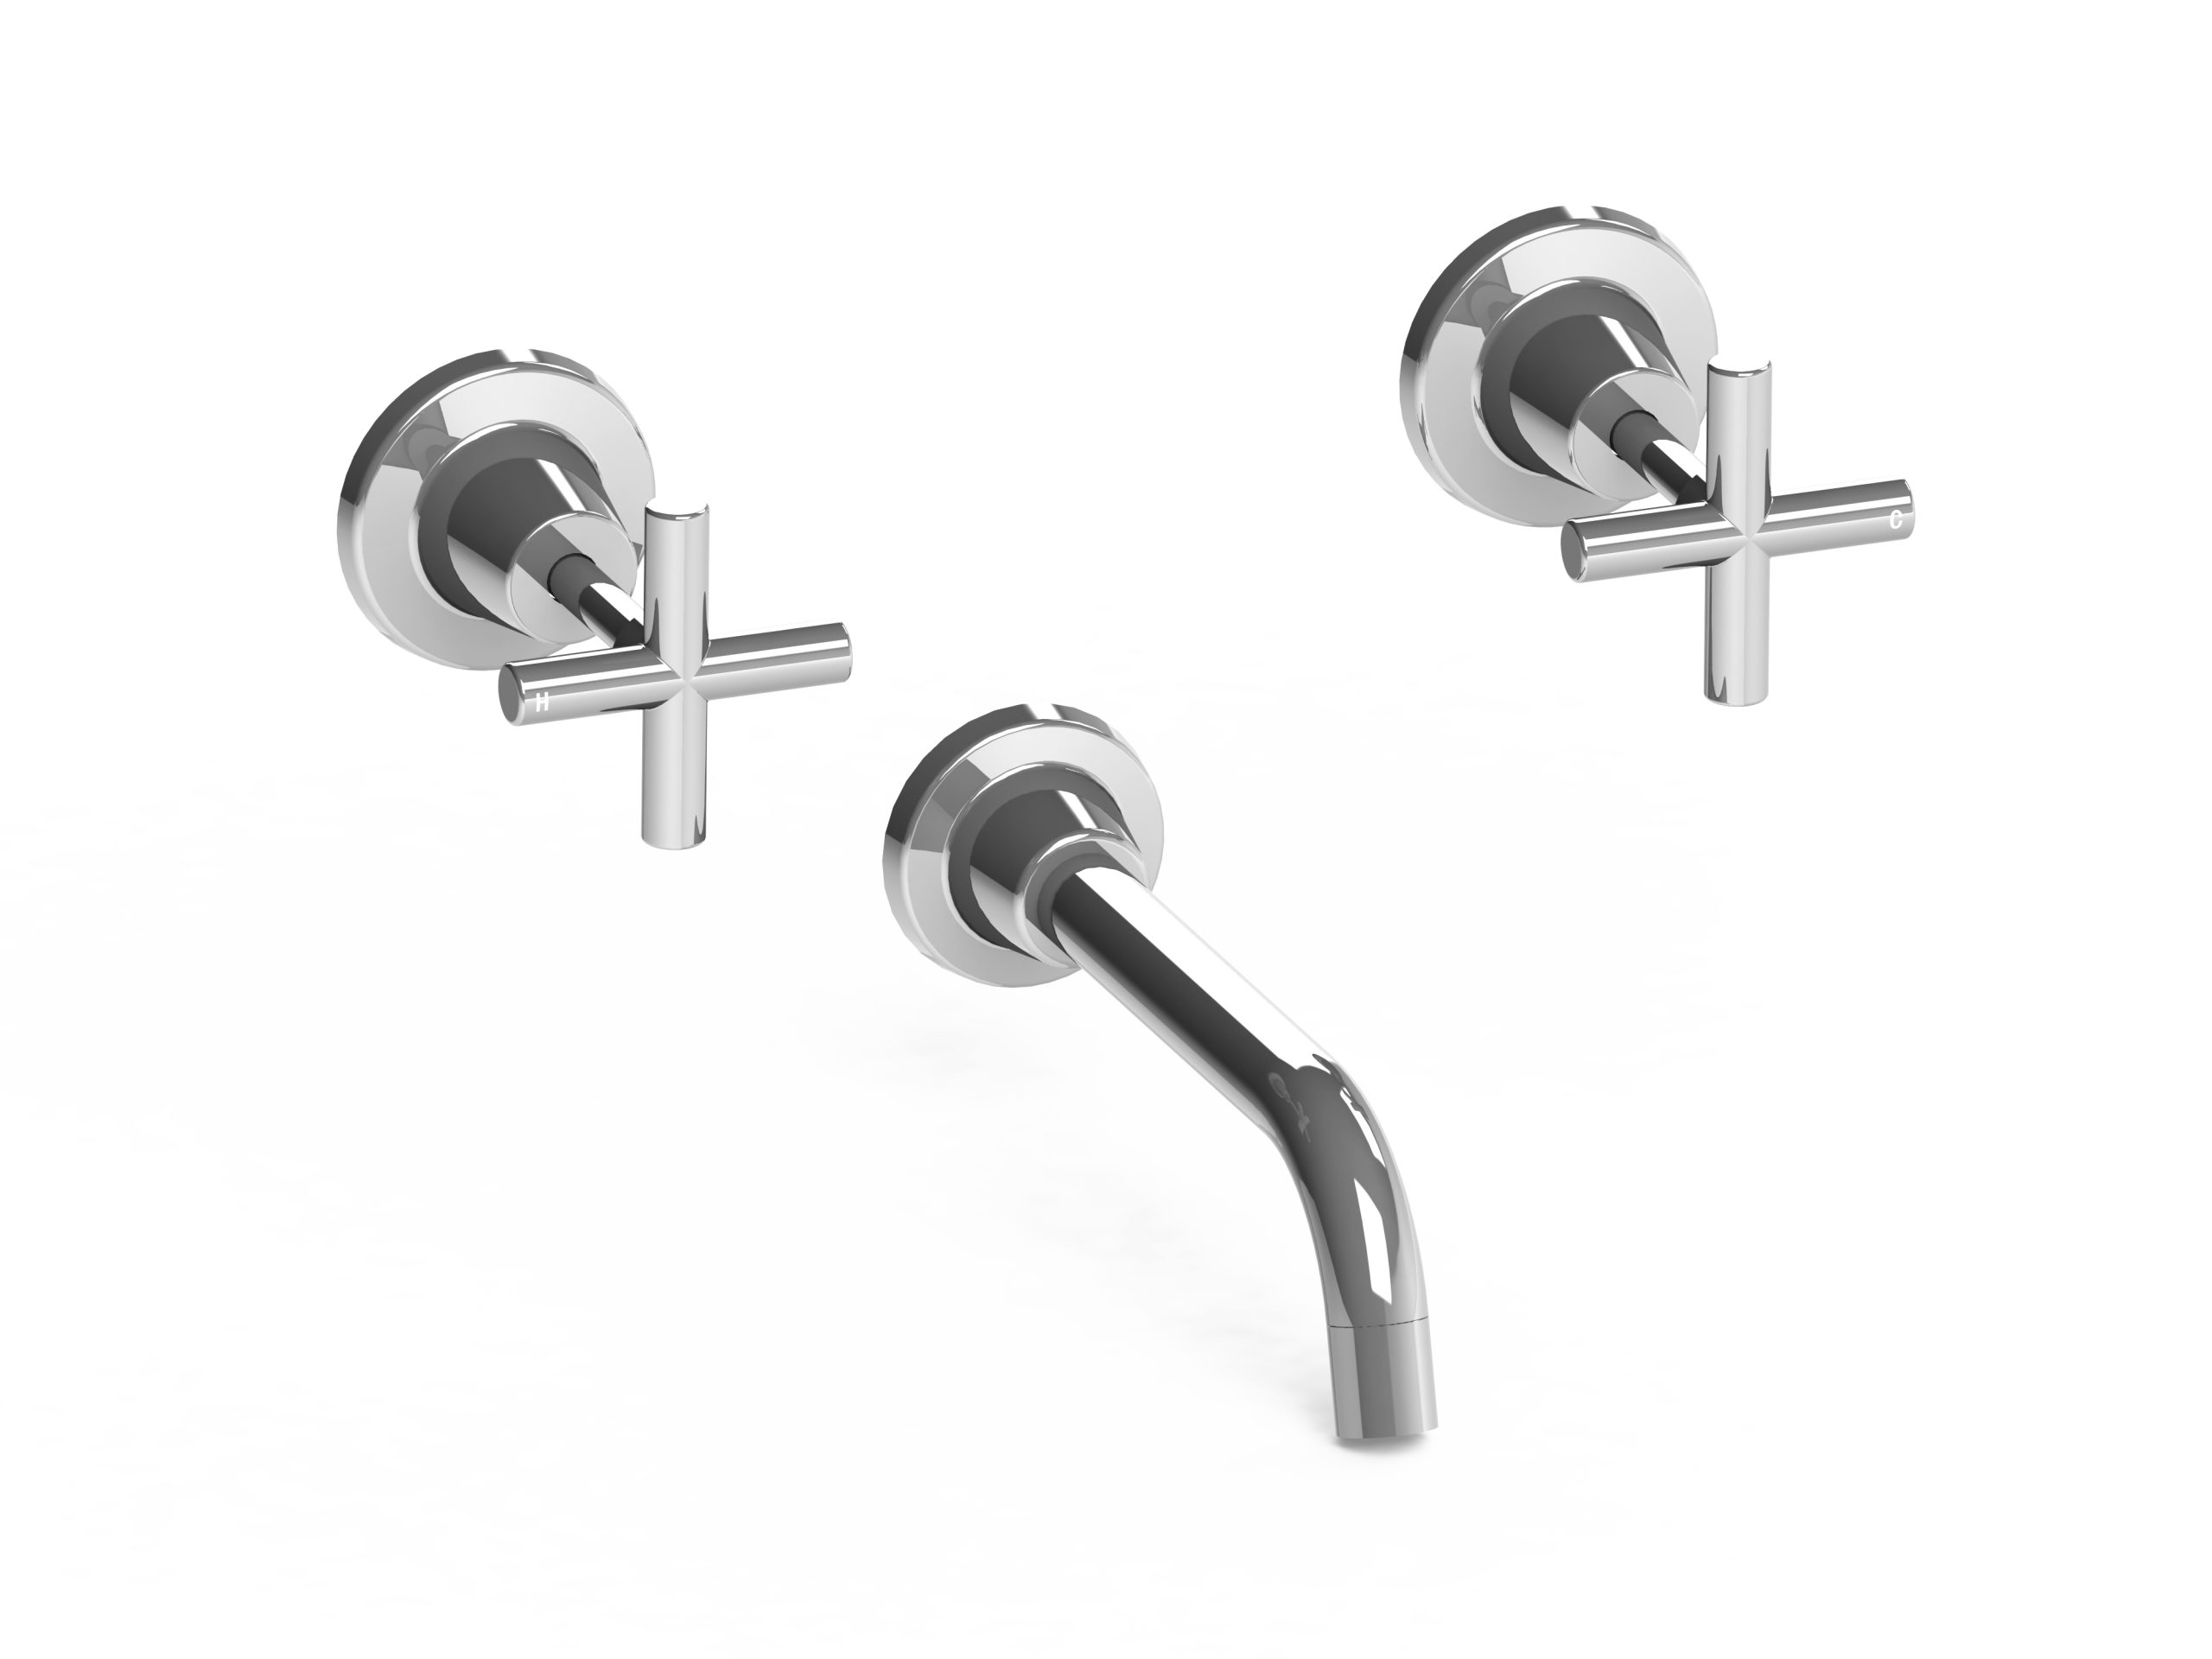 Harmony Meno Bath Set Chrome